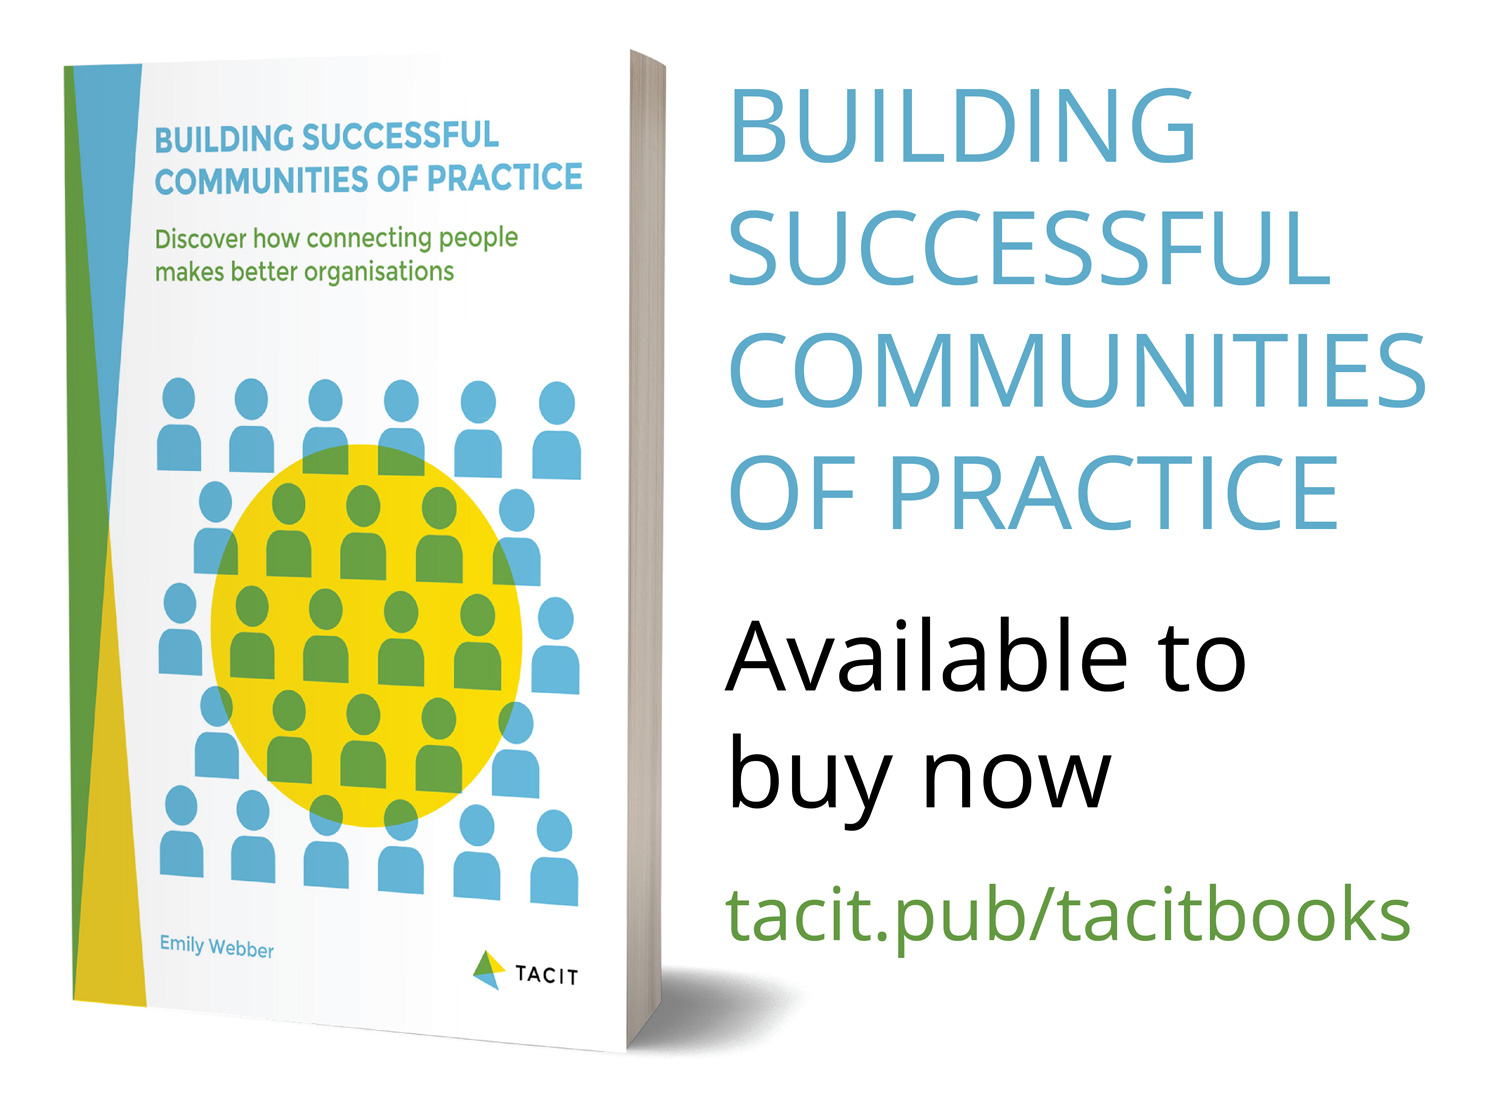 Building Successful Communities of Practice, available to buy now